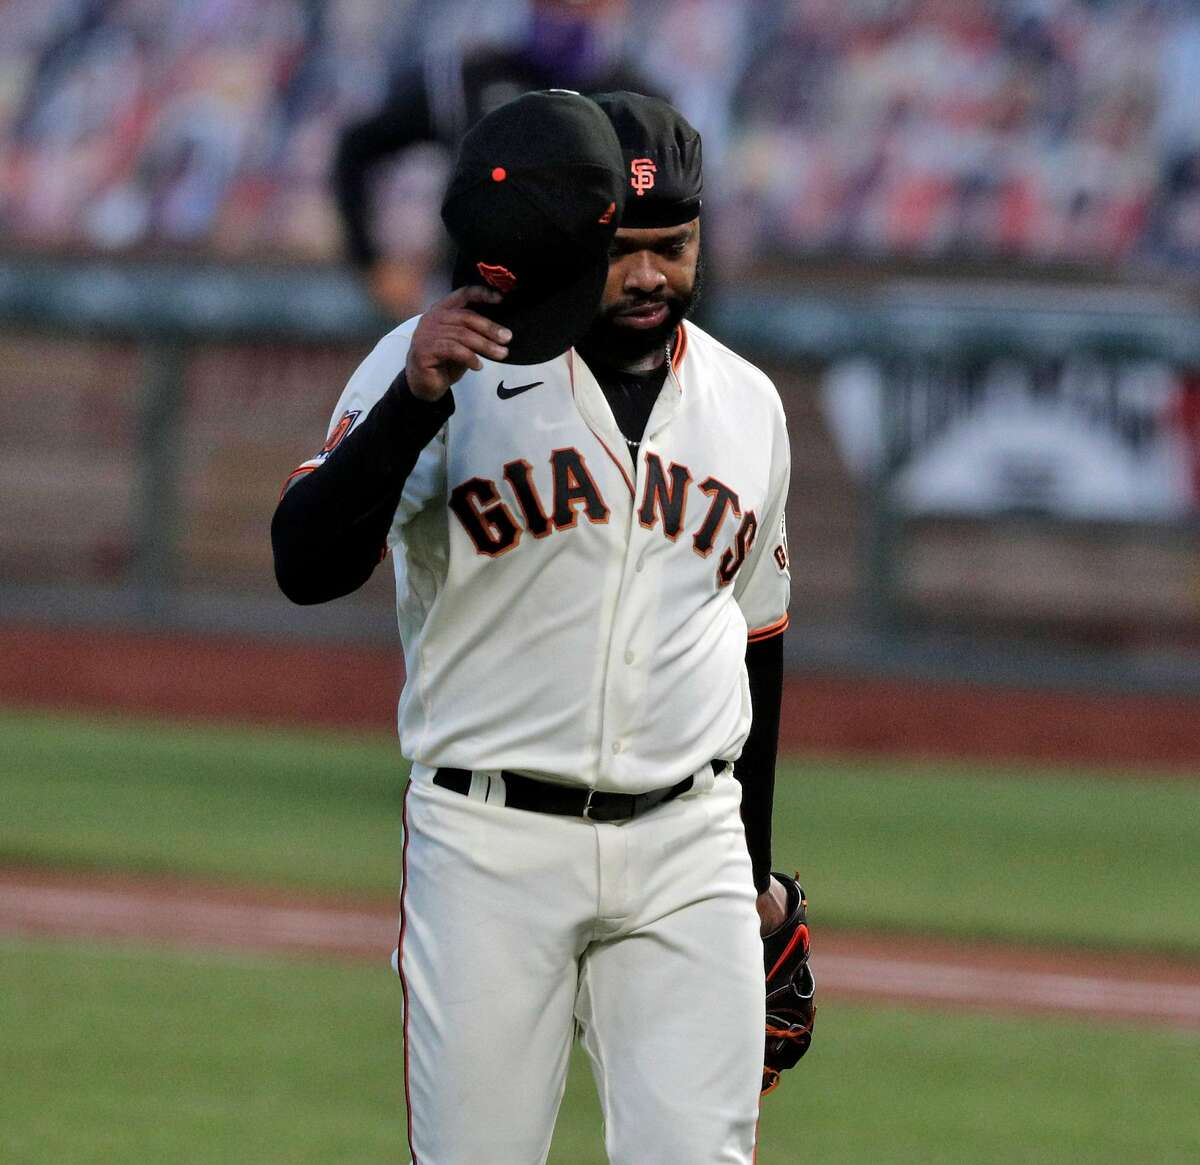 Johnny Cueto (47) walks back to the dugout after the top of the first and allowing two runs to score as the San Francisco Giants played the Colorado Rockies at Oracle Park in San Francisco, Calif., on Monday, September 21, 2020.